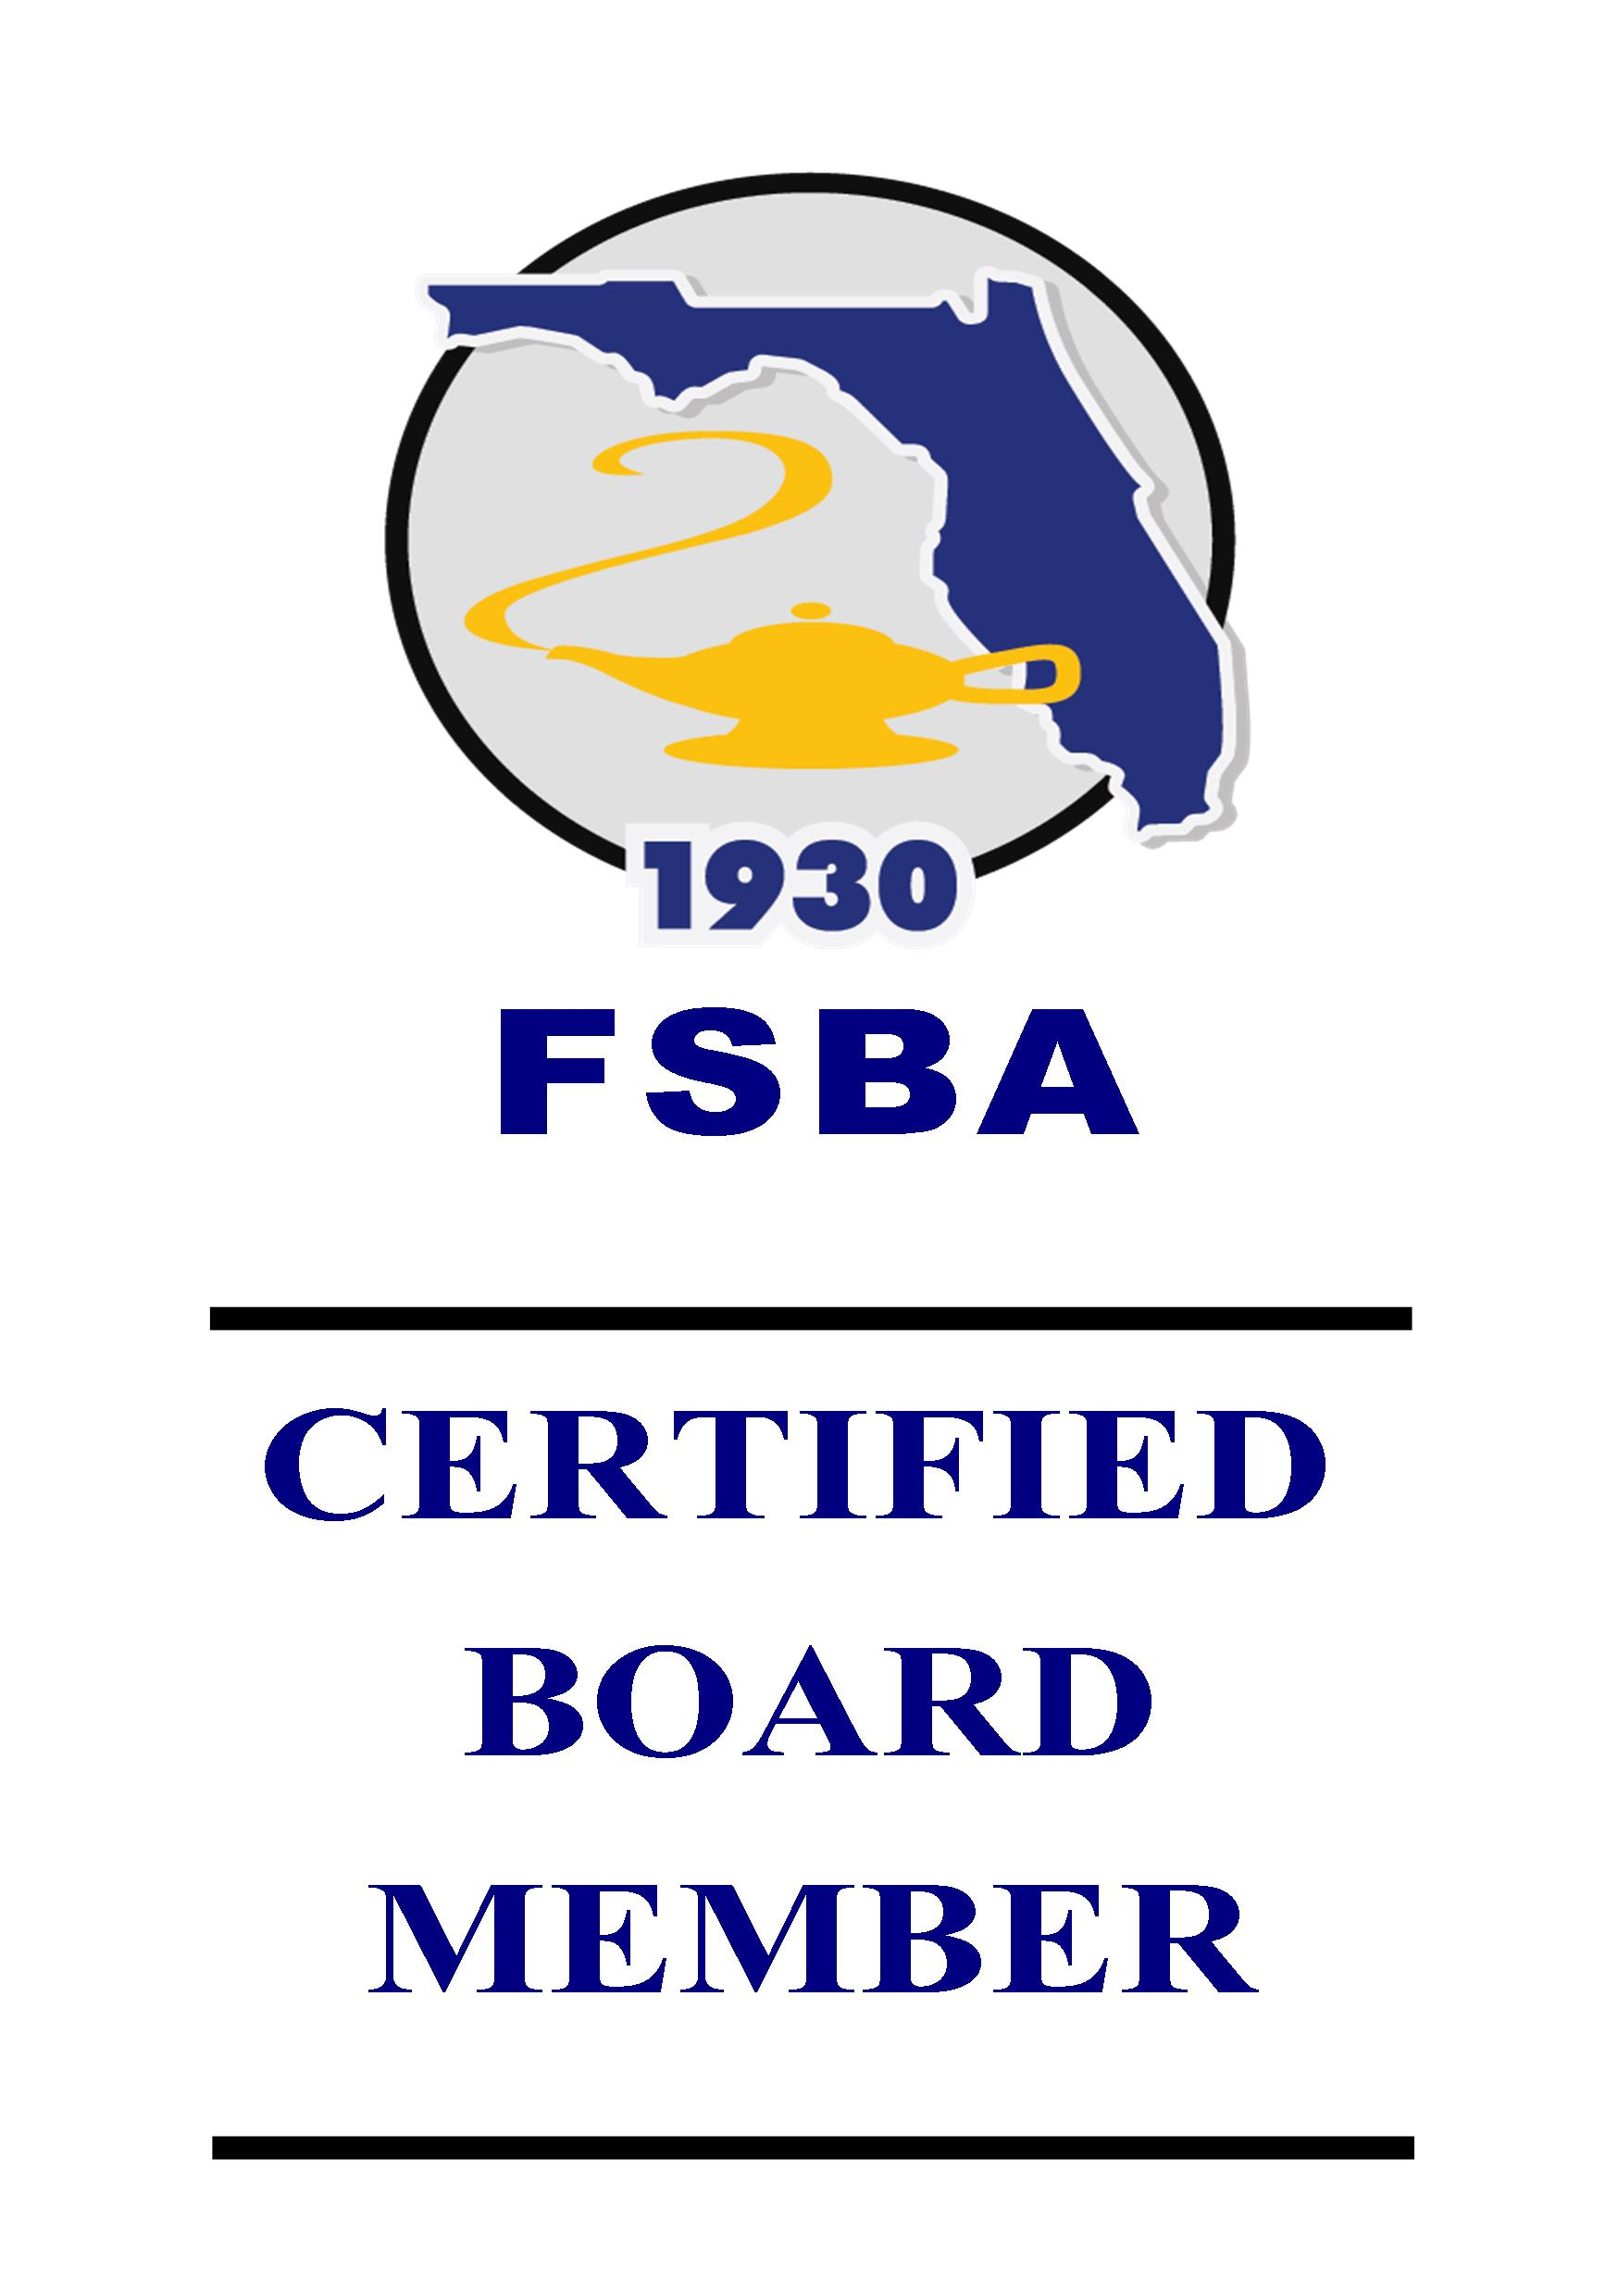 Certified board member cbm program florida school boards the certified board member program is comprised of several training sessions designed to meet the developmental needs of individual board members 1betcityfo Images